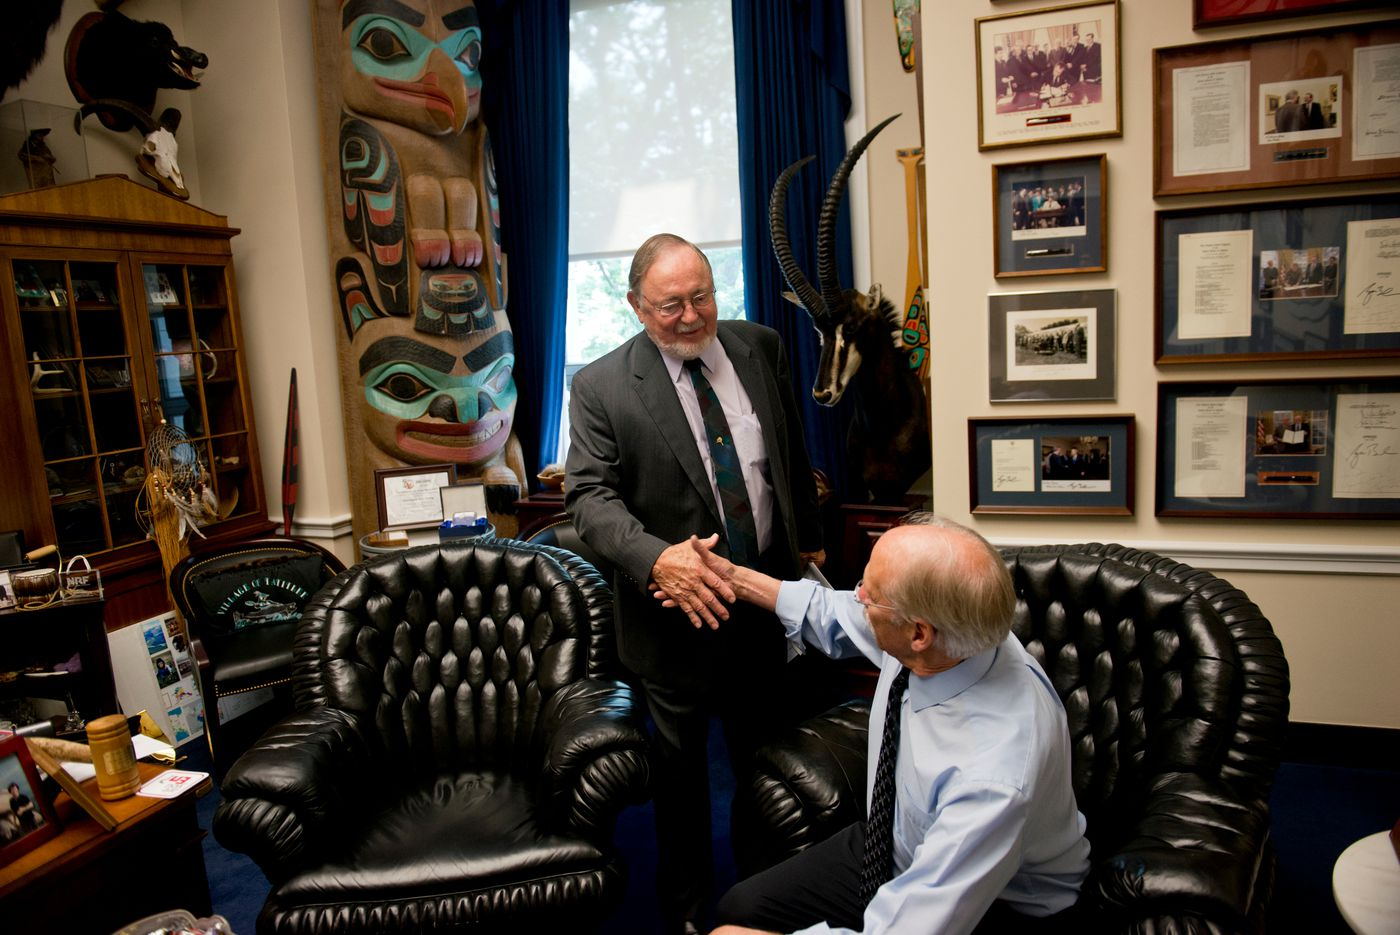 Rep. Don Young greets Mayor Luke Hopkins of the Fairbanks North Star Borough on Thursday, June 25, 2015. (Marc Lester / Alaska Dispatch News )